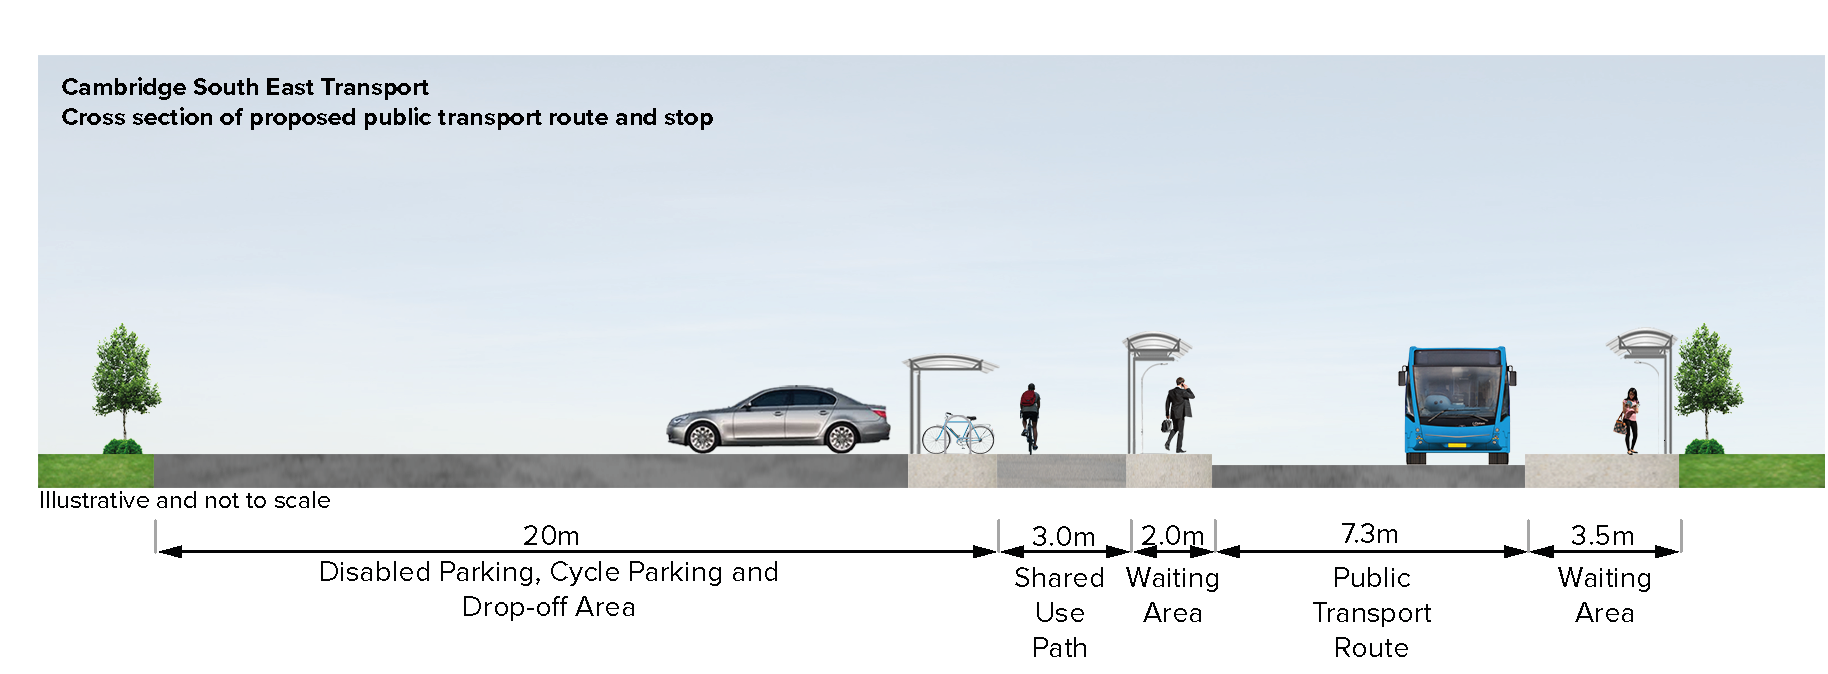 Cross section of proposed public transport route and stop